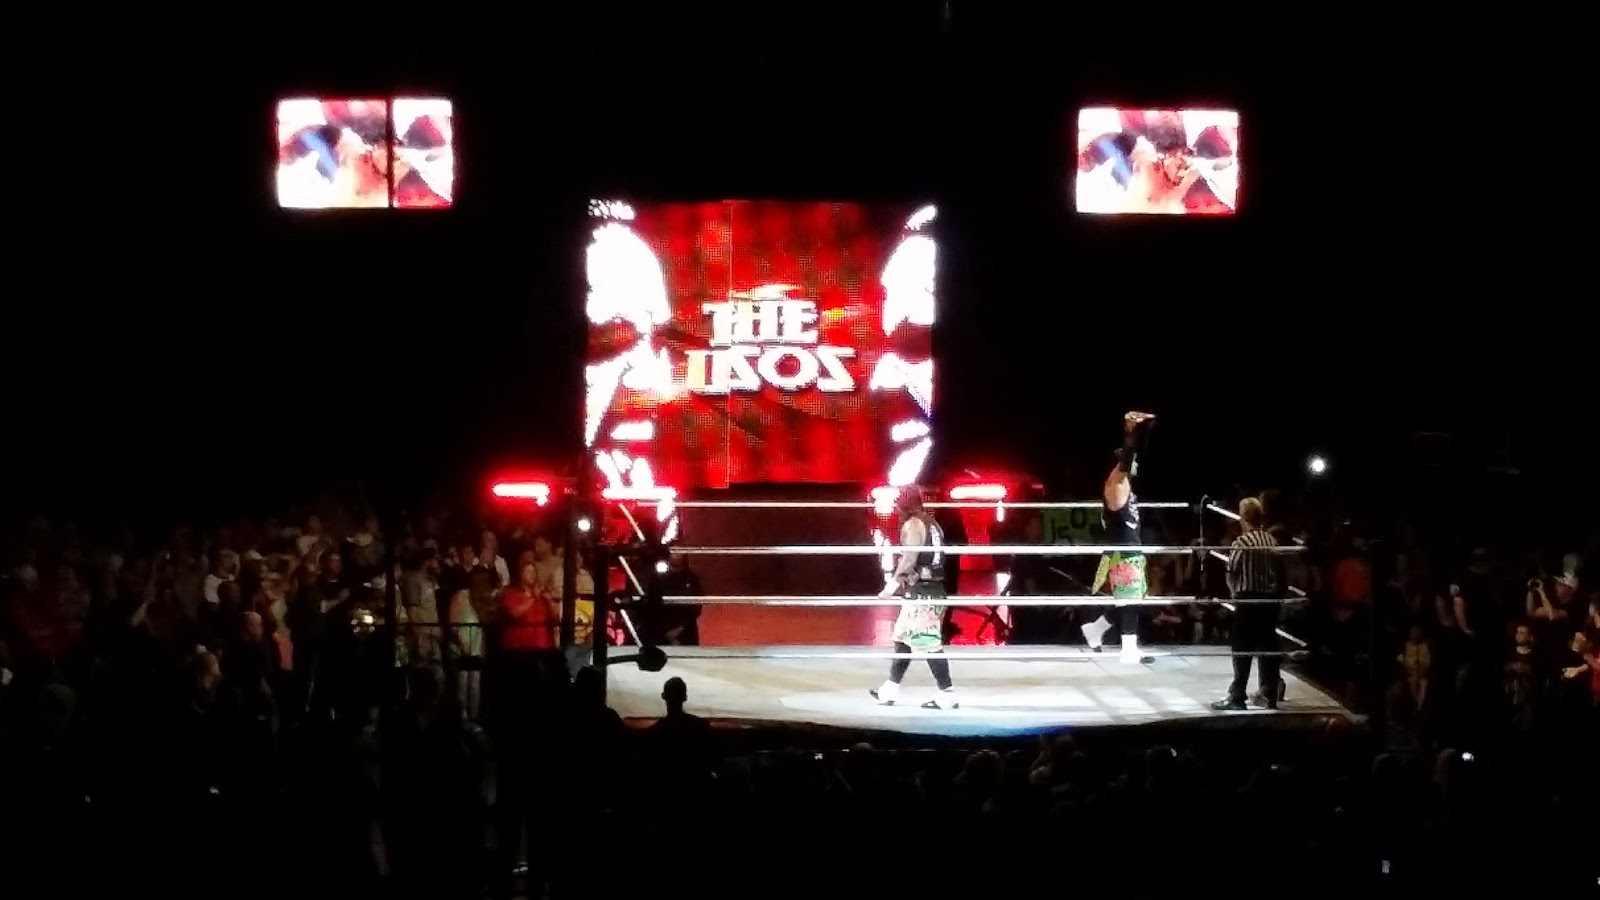 Wwe Live Event Images Of Vince Mcmahon Peeking Ric Flair 39 S Return And Mark Henry